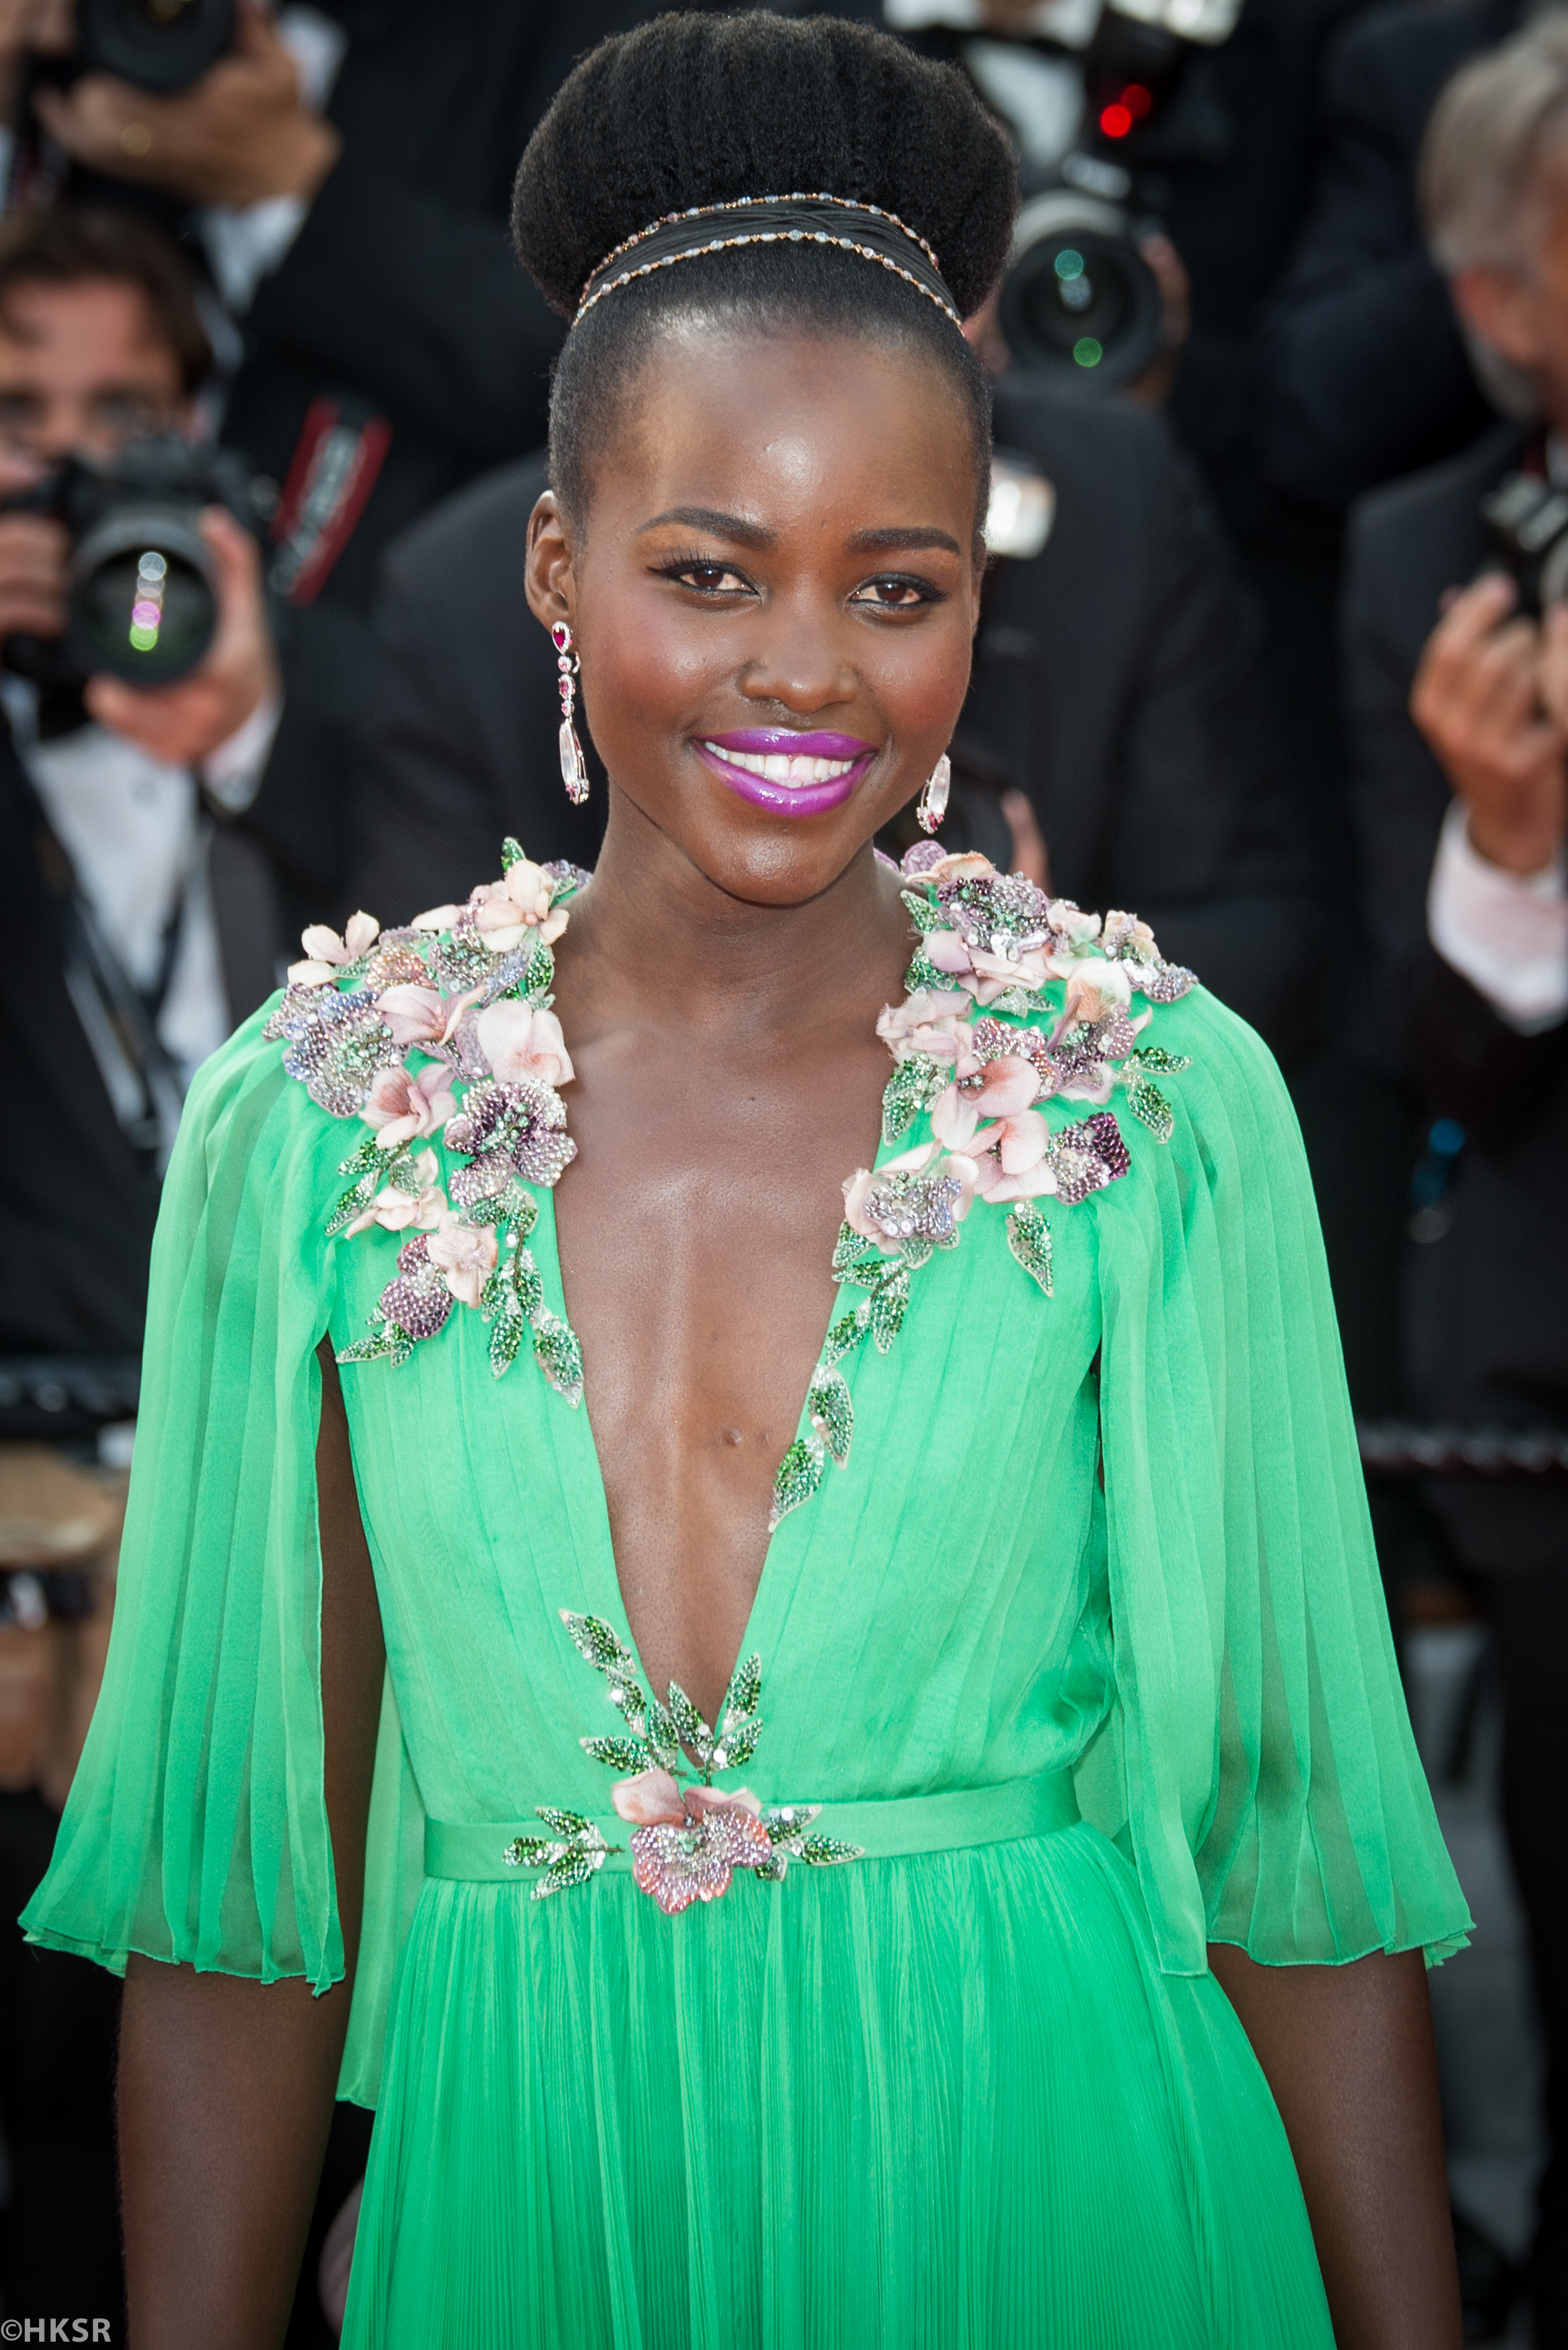 Lupita Nyong'o in Gucci at Cannes 2015 red carpet